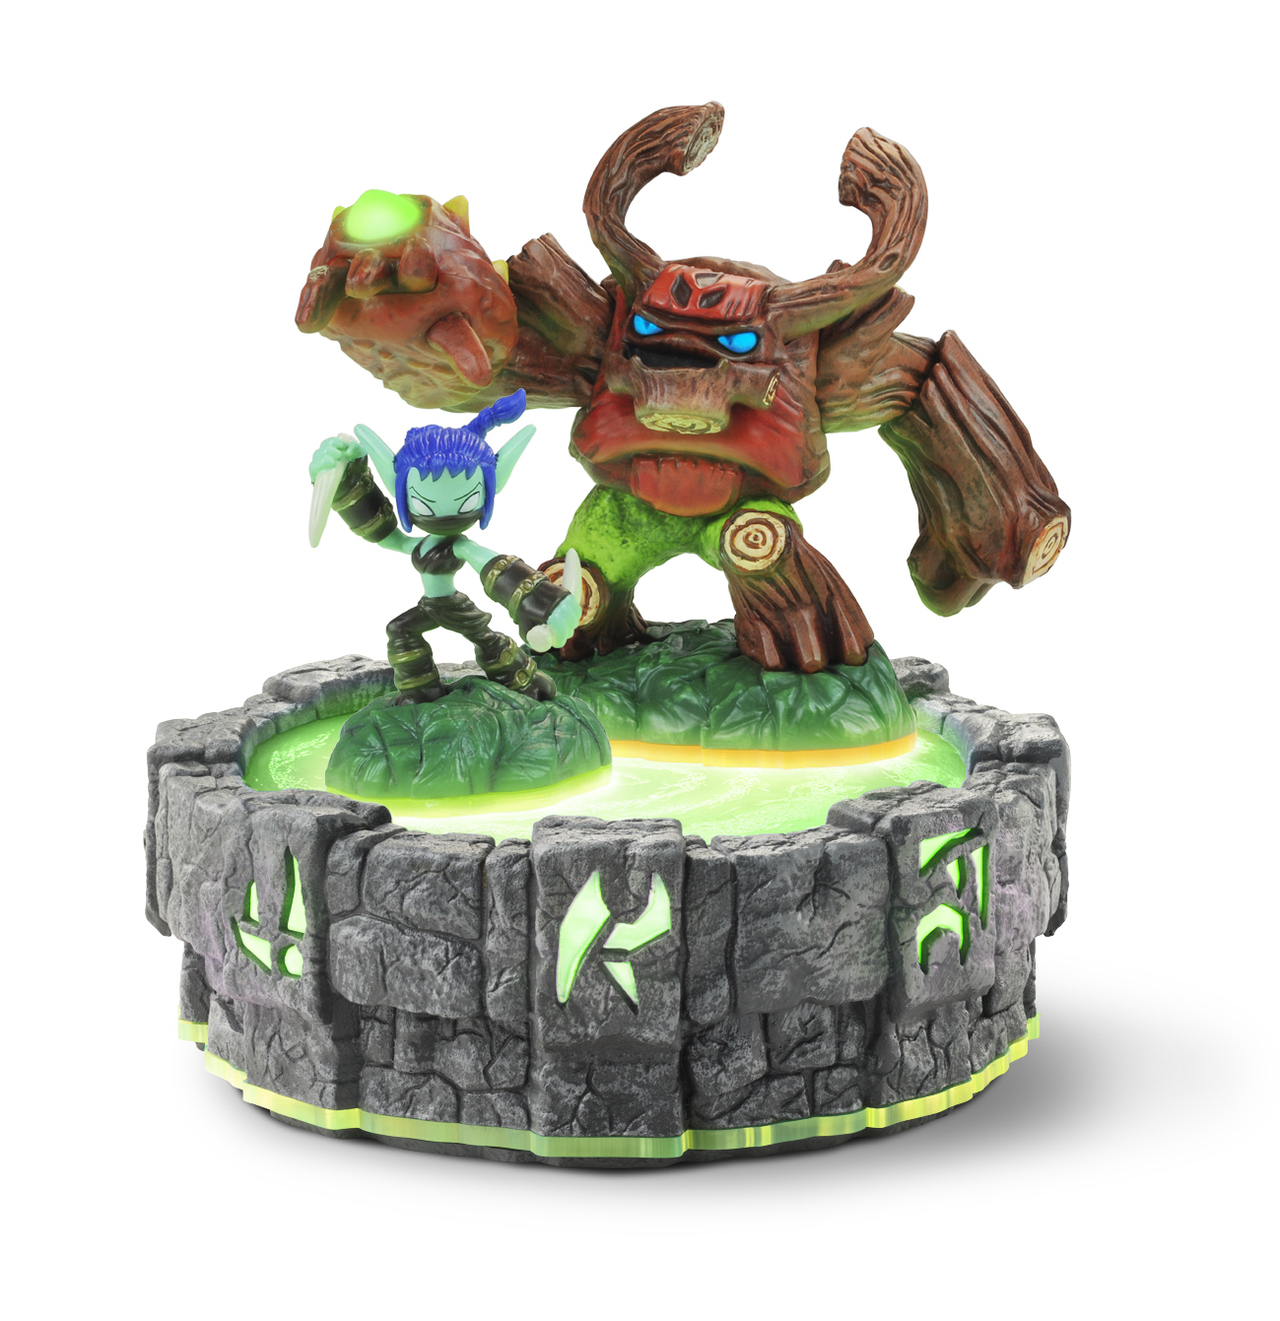 skylanders_giants_tree_rex_and_stealth_elf-1